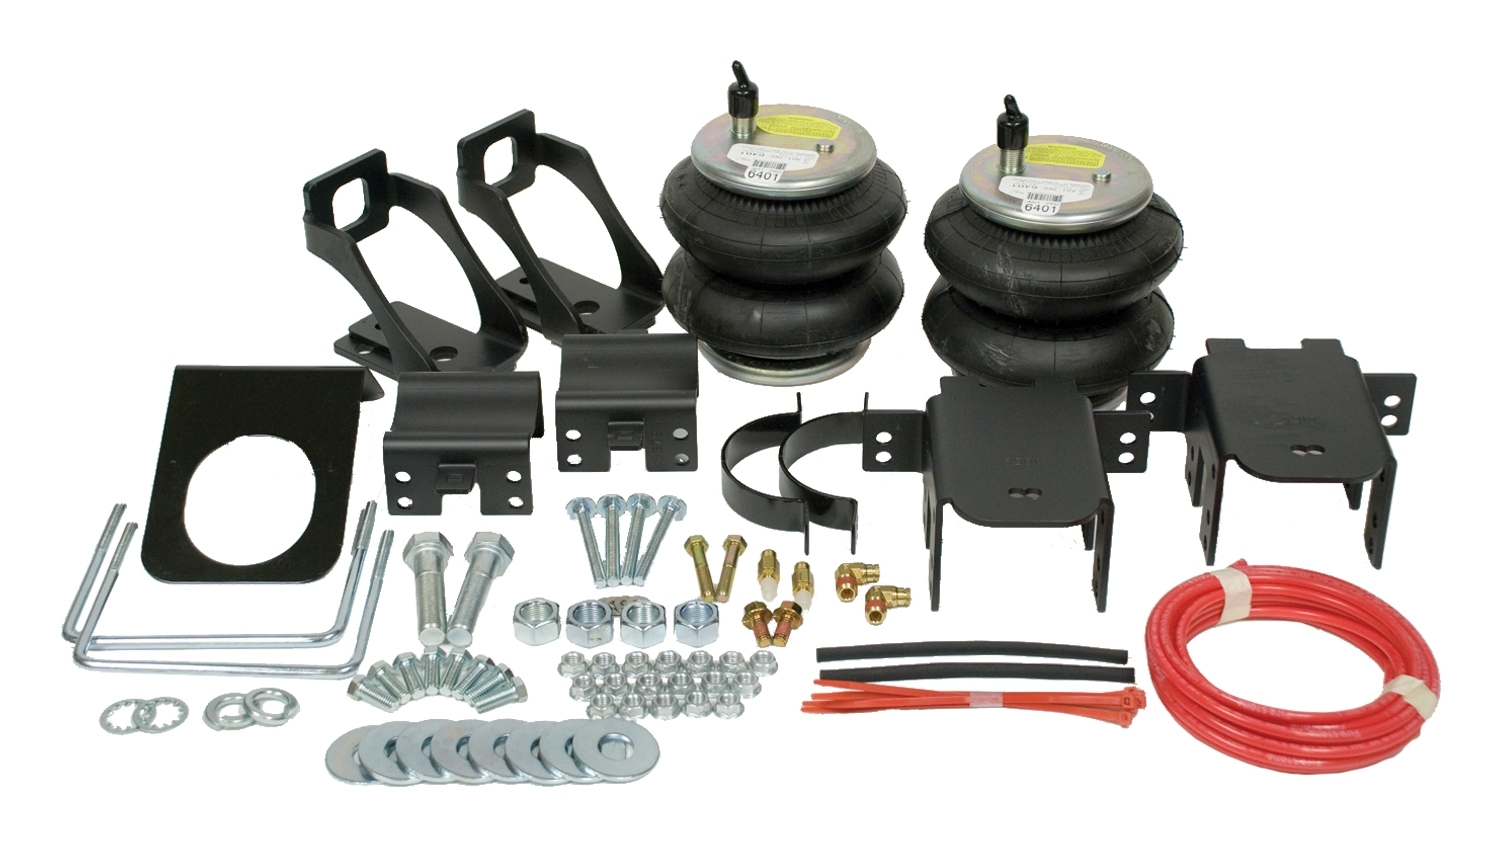 Air Spring Kit Made For 2017 F250 And F350 Products Trucking Info Chevrolet K3500 Wiring Harness